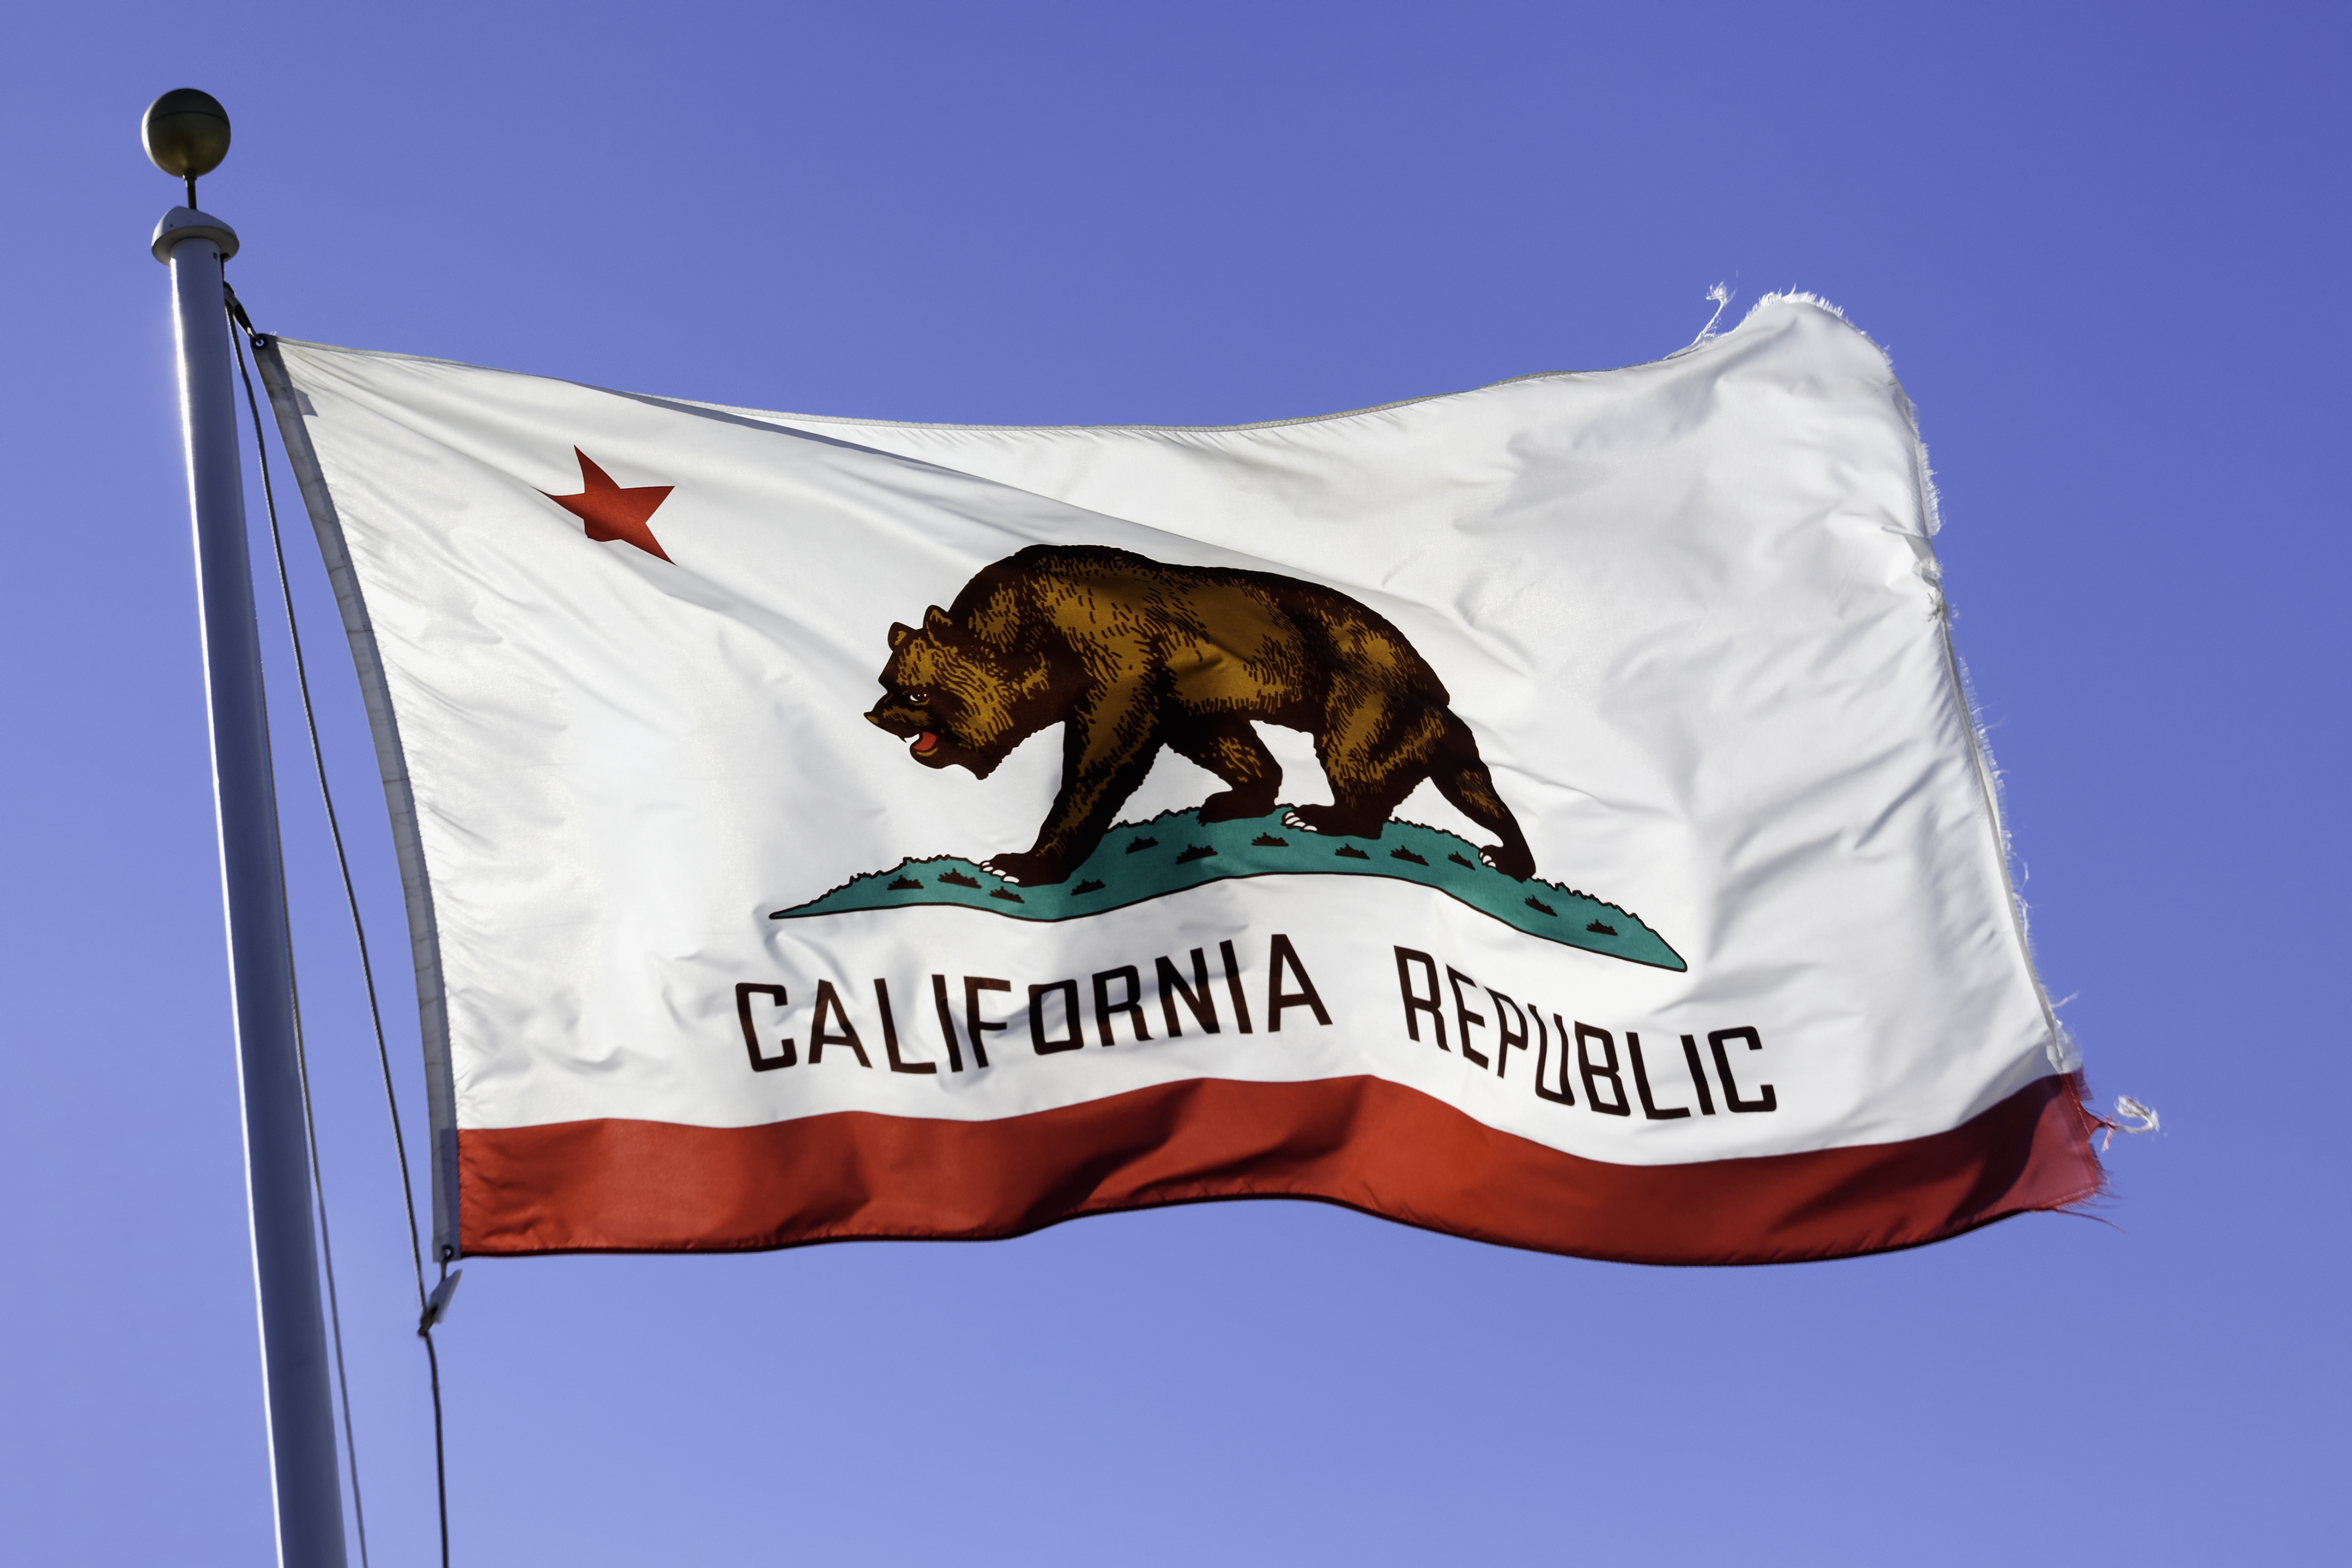 The flag of California blowing in the wind.